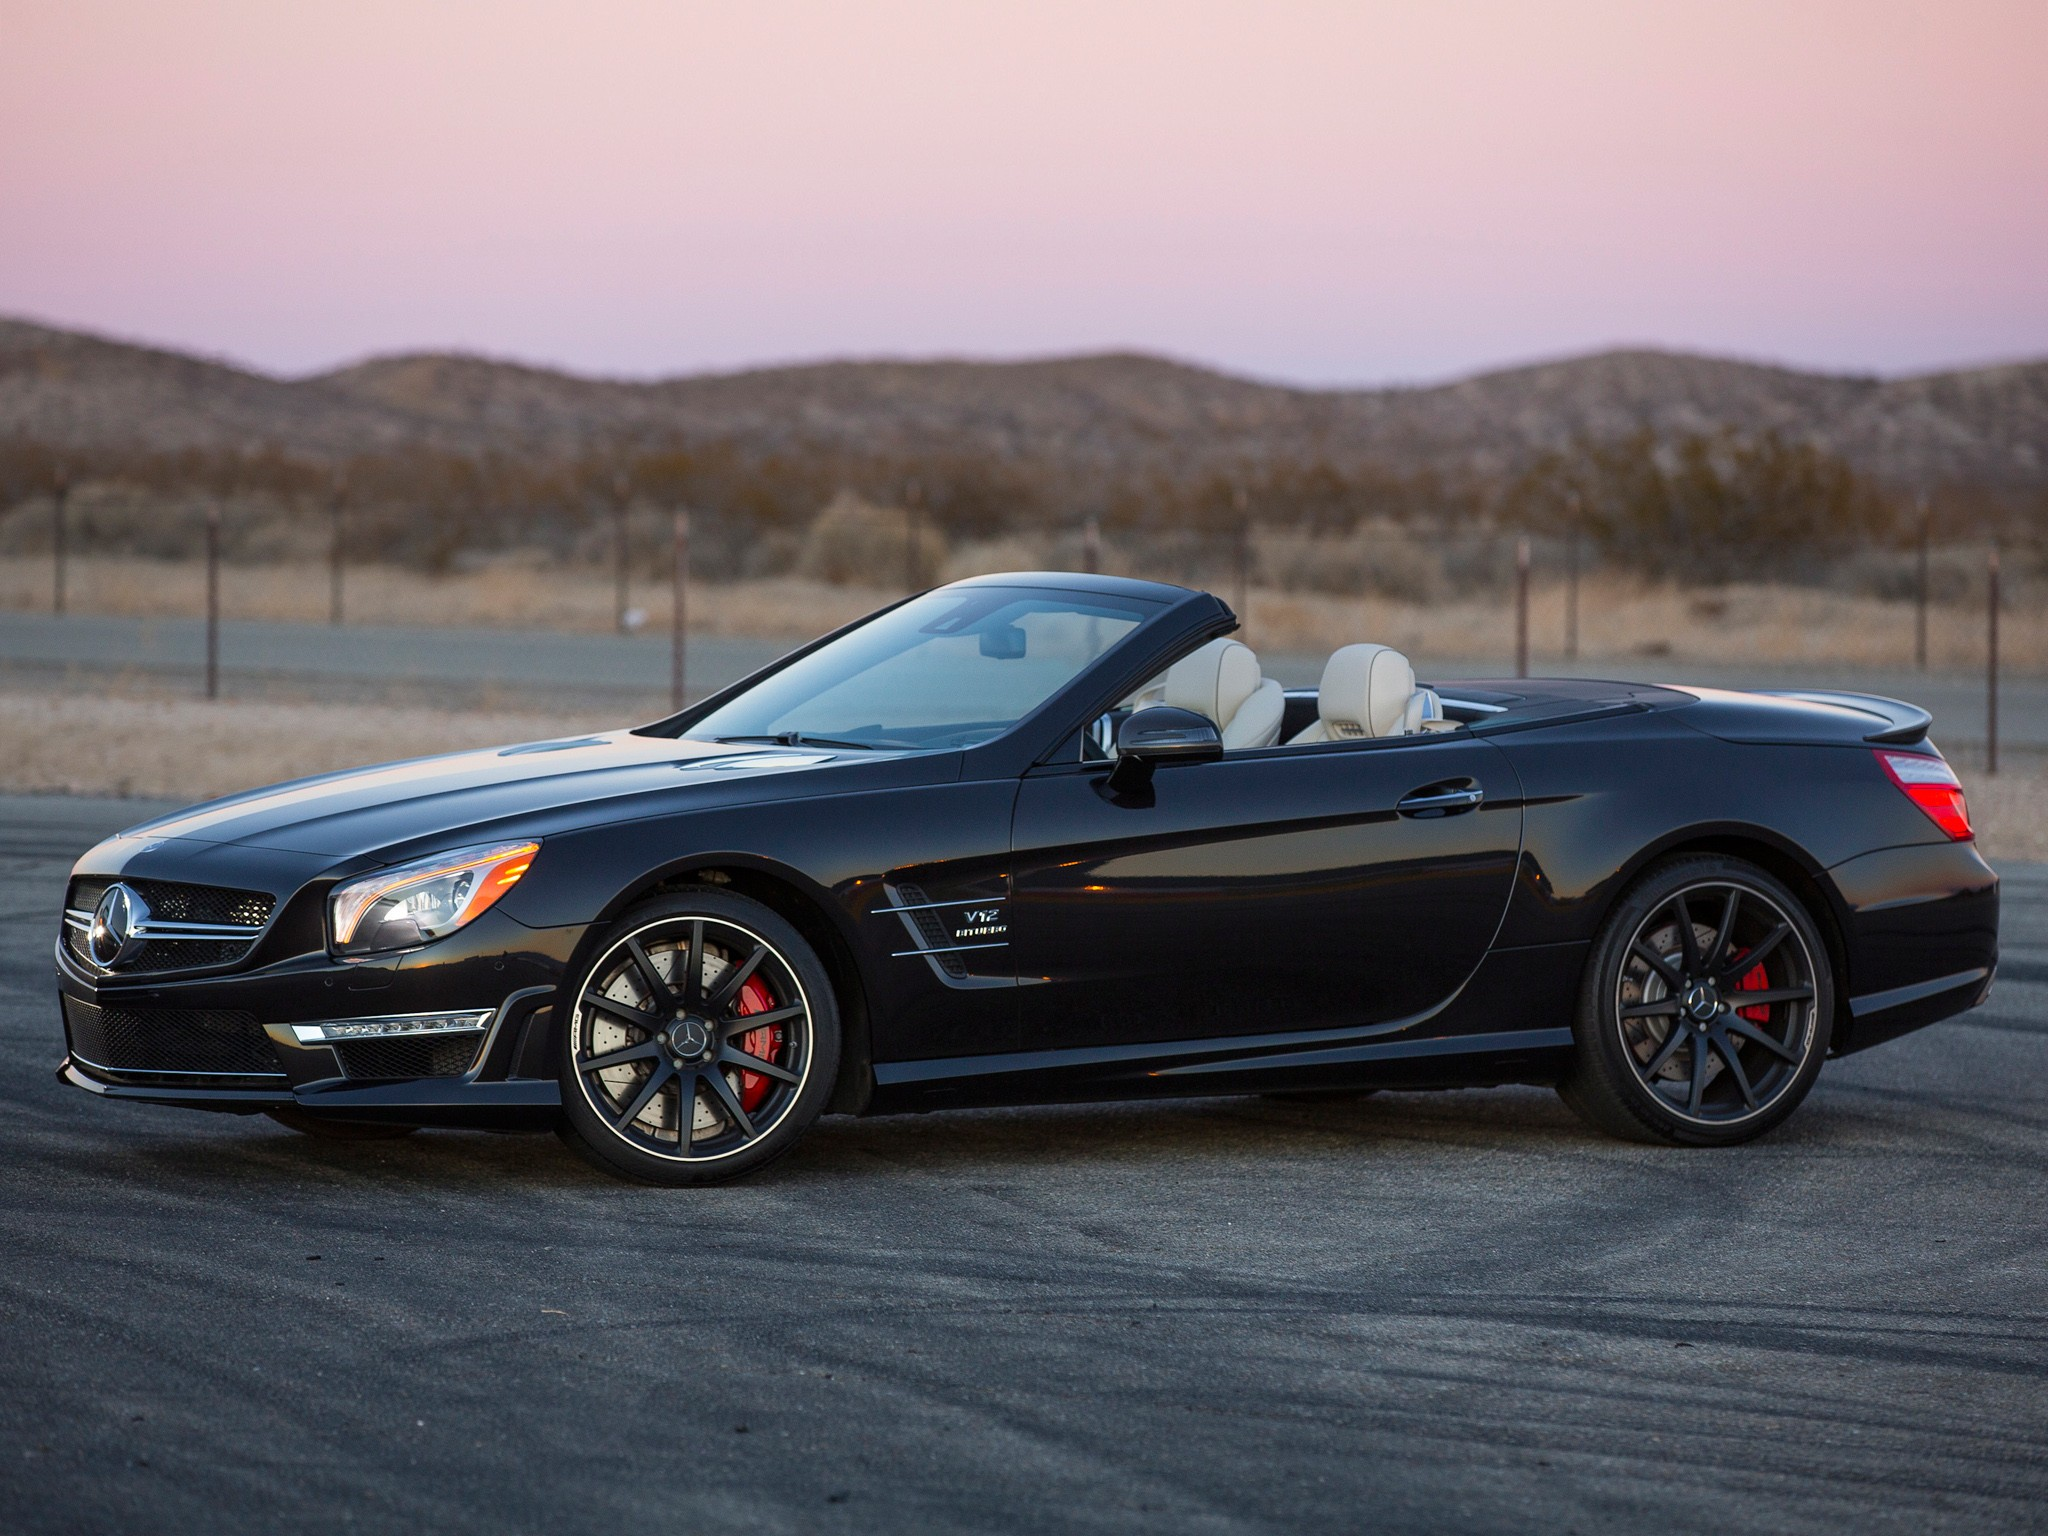 mercedes benz sl 65 amg r231 specs 2012 2013 2014. Black Bedroom Furniture Sets. Home Design Ideas